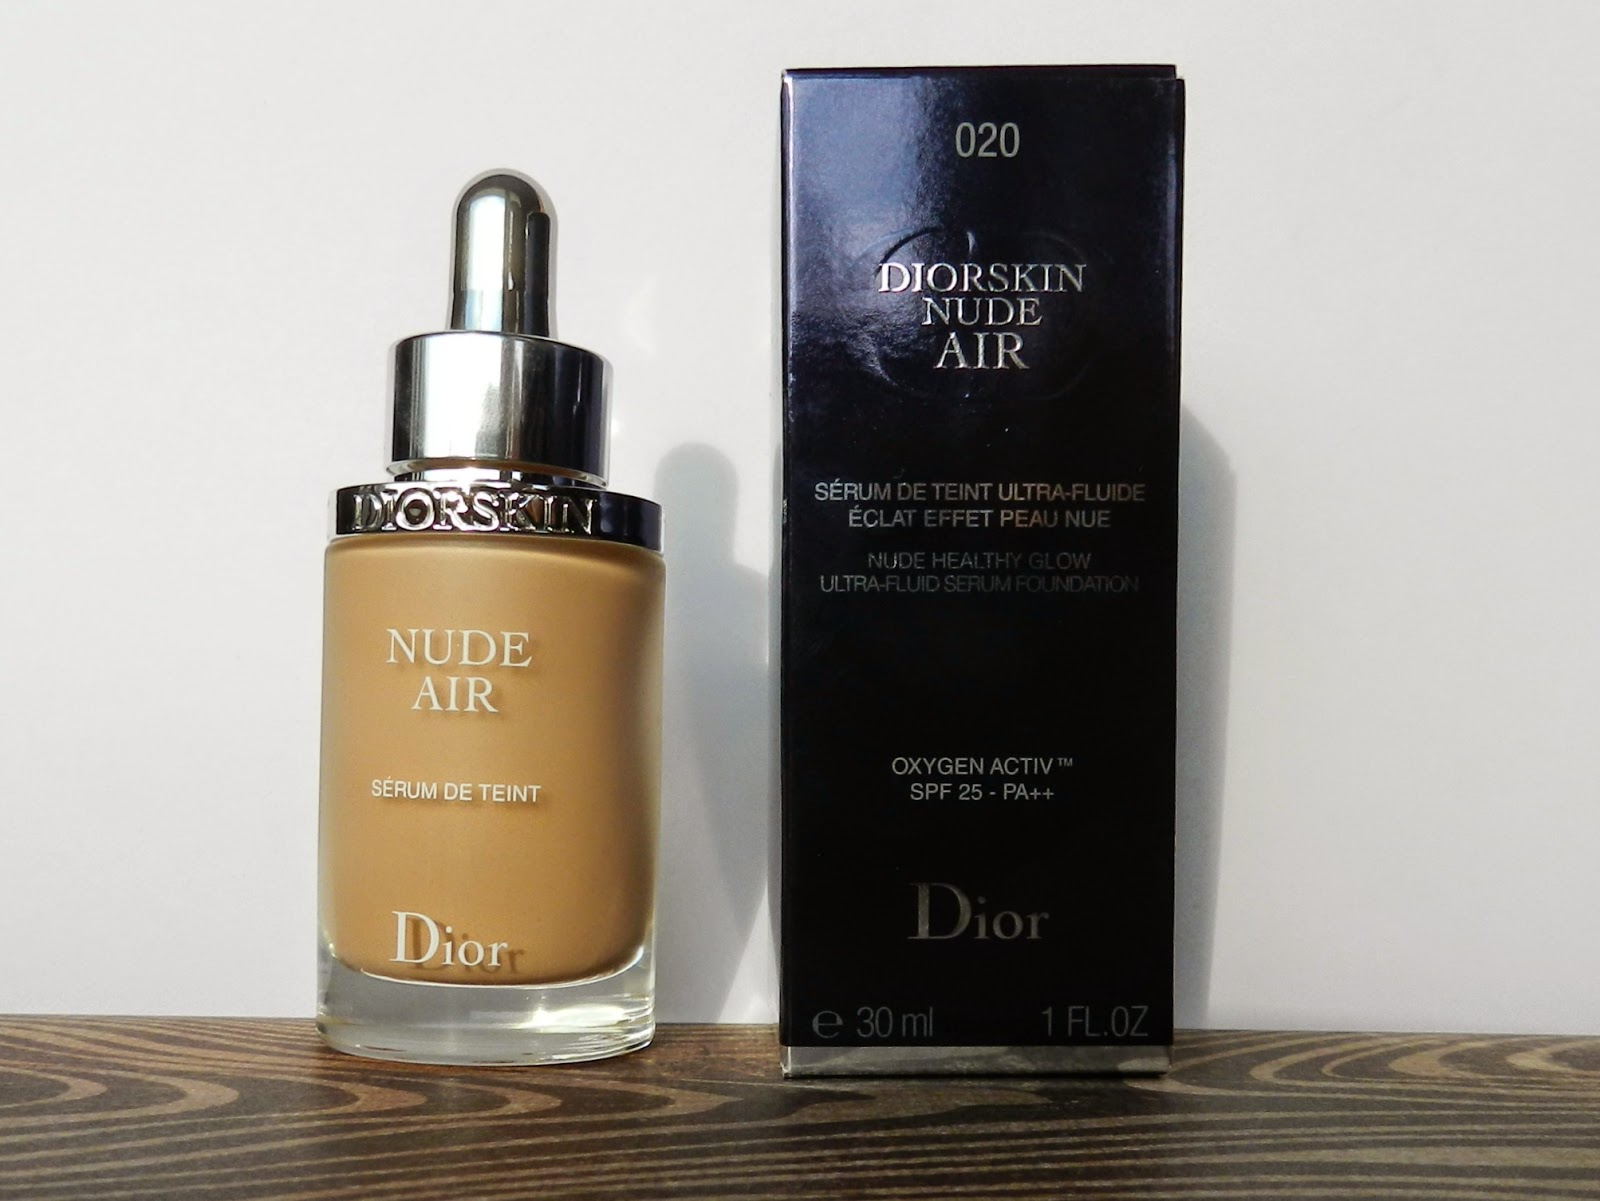 unfade what fades diorskin nude air foundation loose and pressed powder review swatches. Black Bedroom Furniture Sets. Home Design Ideas